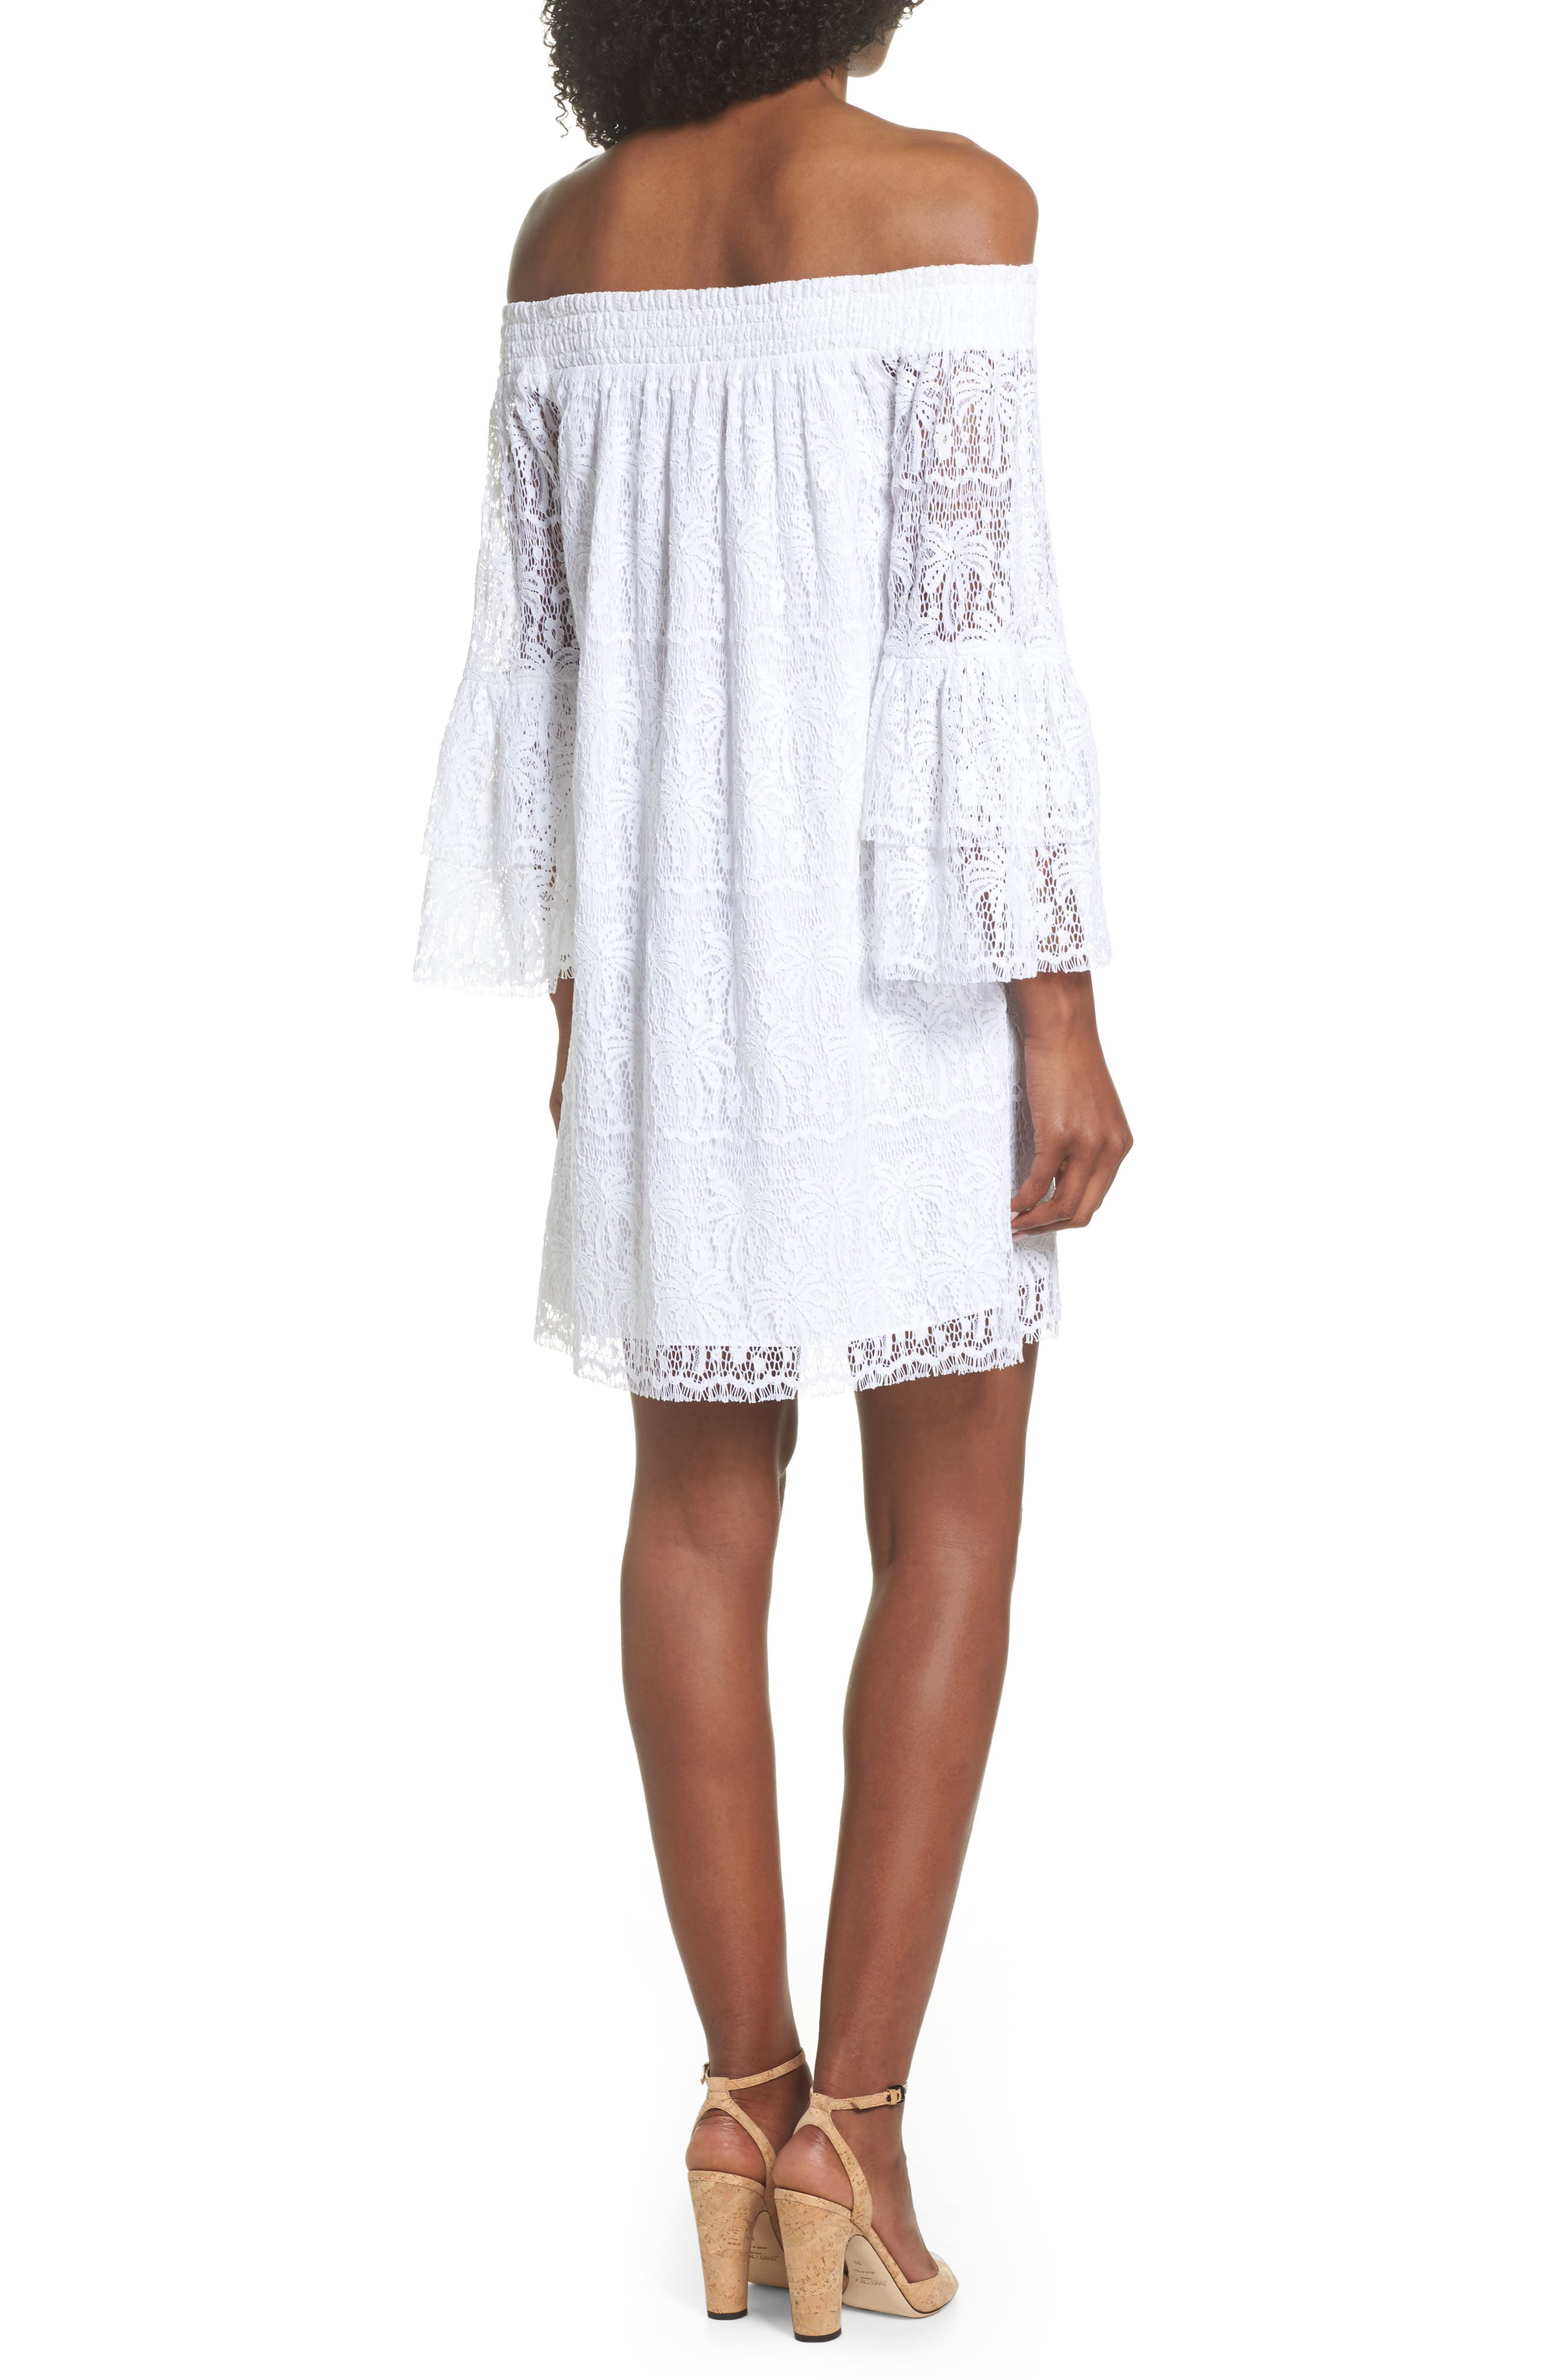 Tobyn Off the Shoulder Dres,                             Alternate thumbnail 2, color,                             Resort White Palm Tree Lace